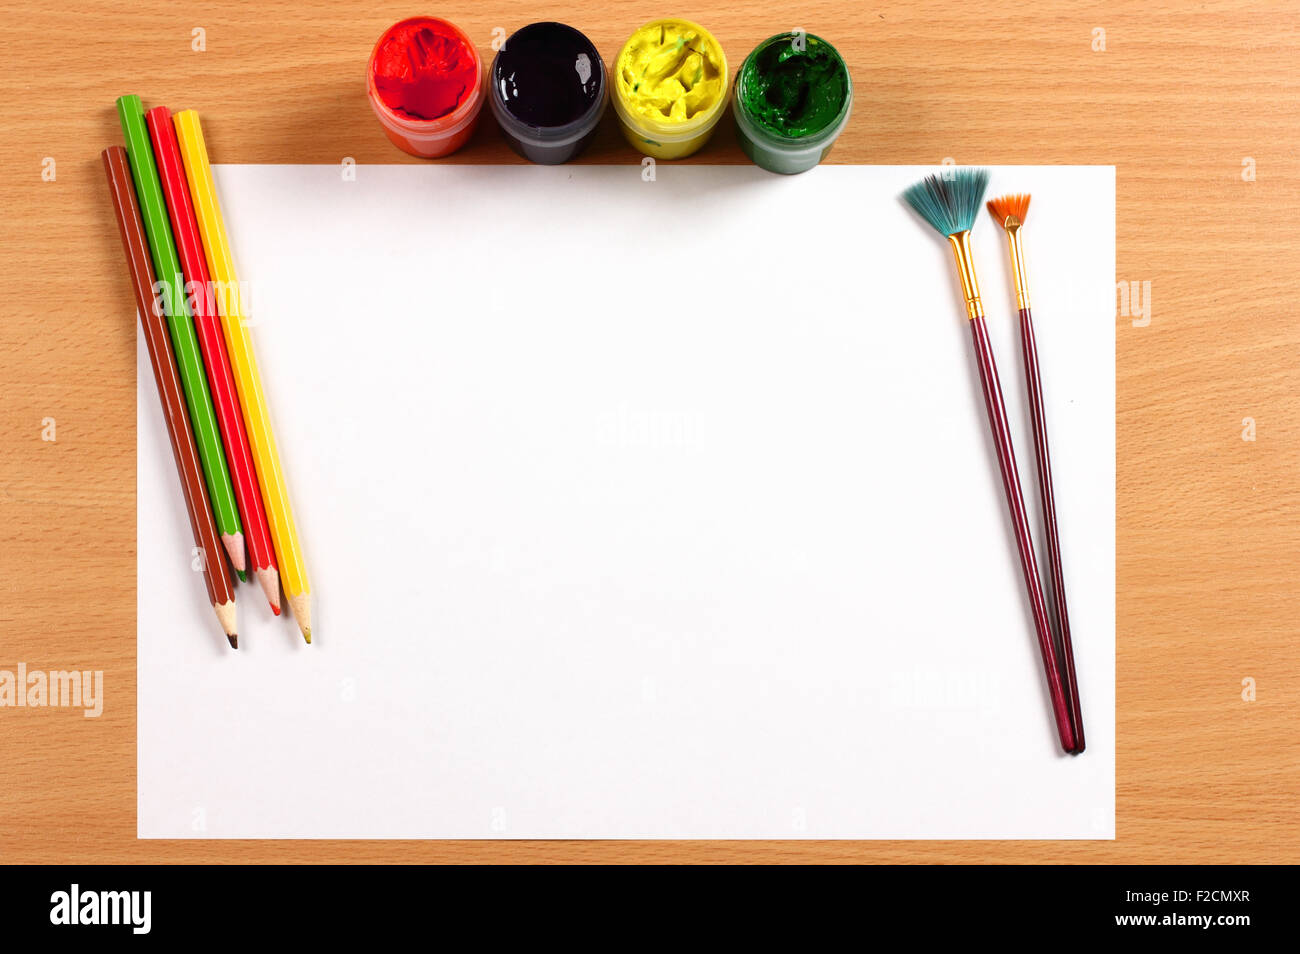 Empty sheet, paint and pencils on desk, creativity concept - Stock Image